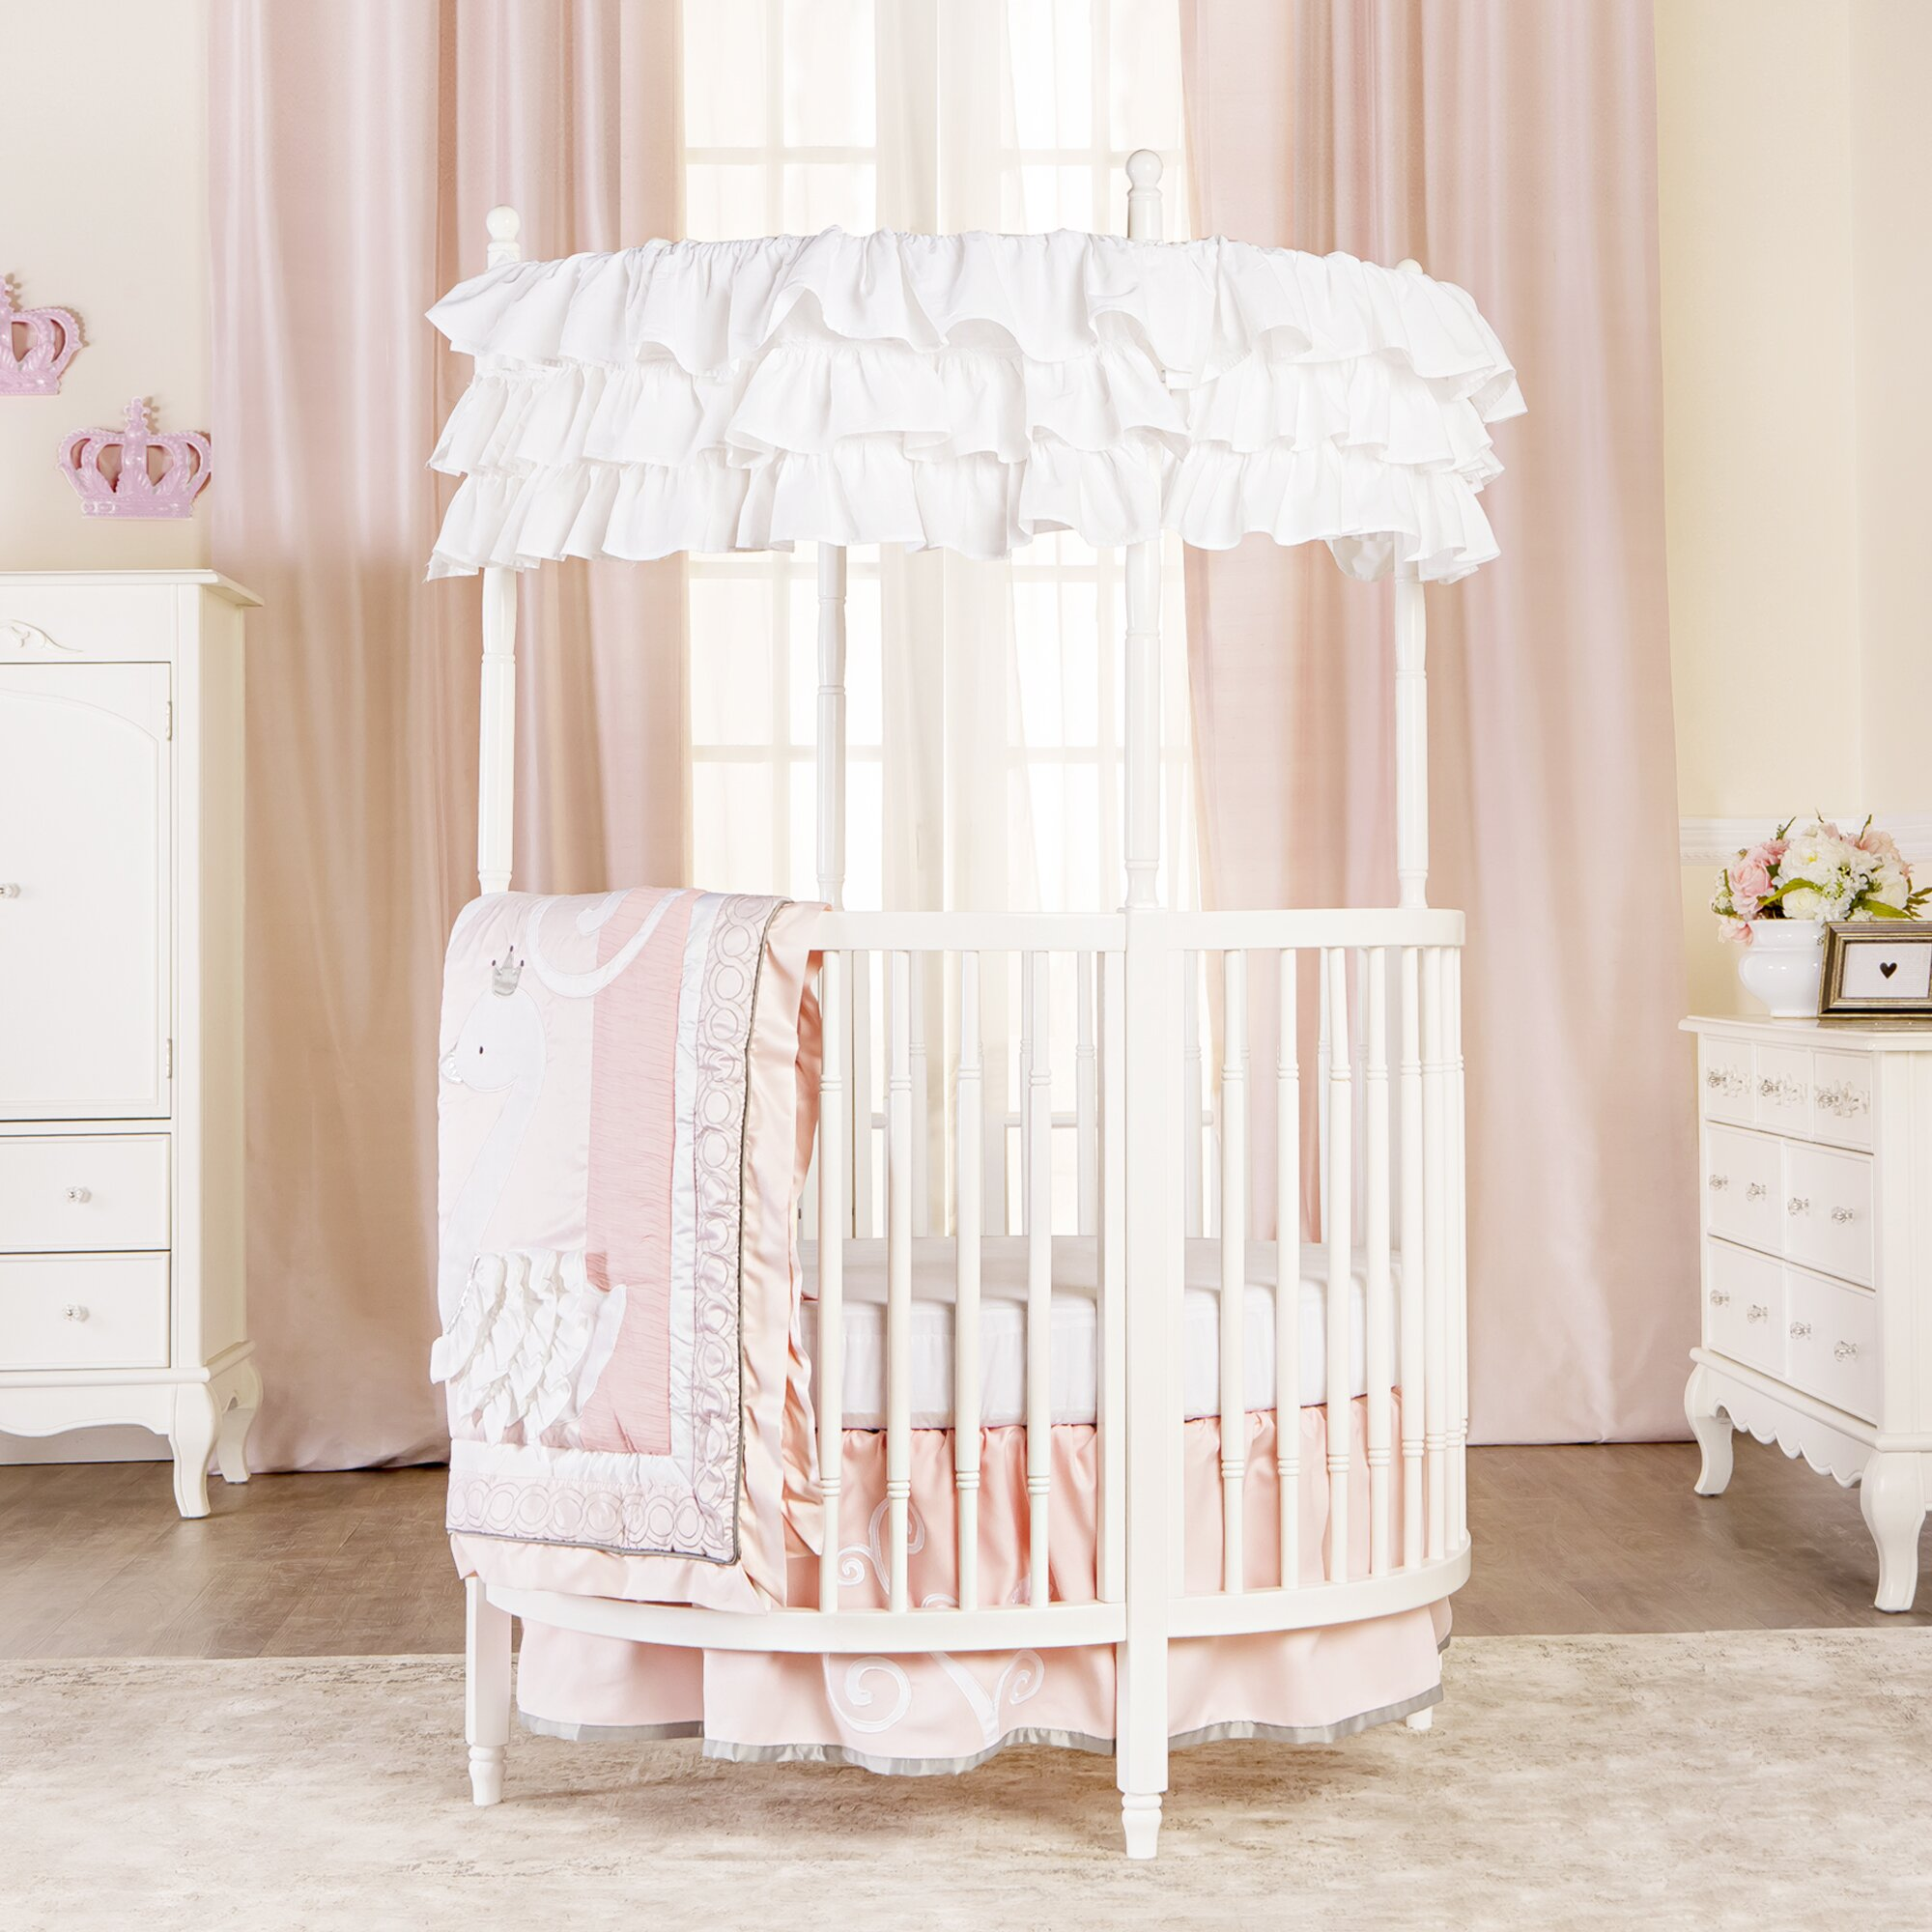 Used crib for sale ottawa - Dream On Me Sophia Posh Circular Crib